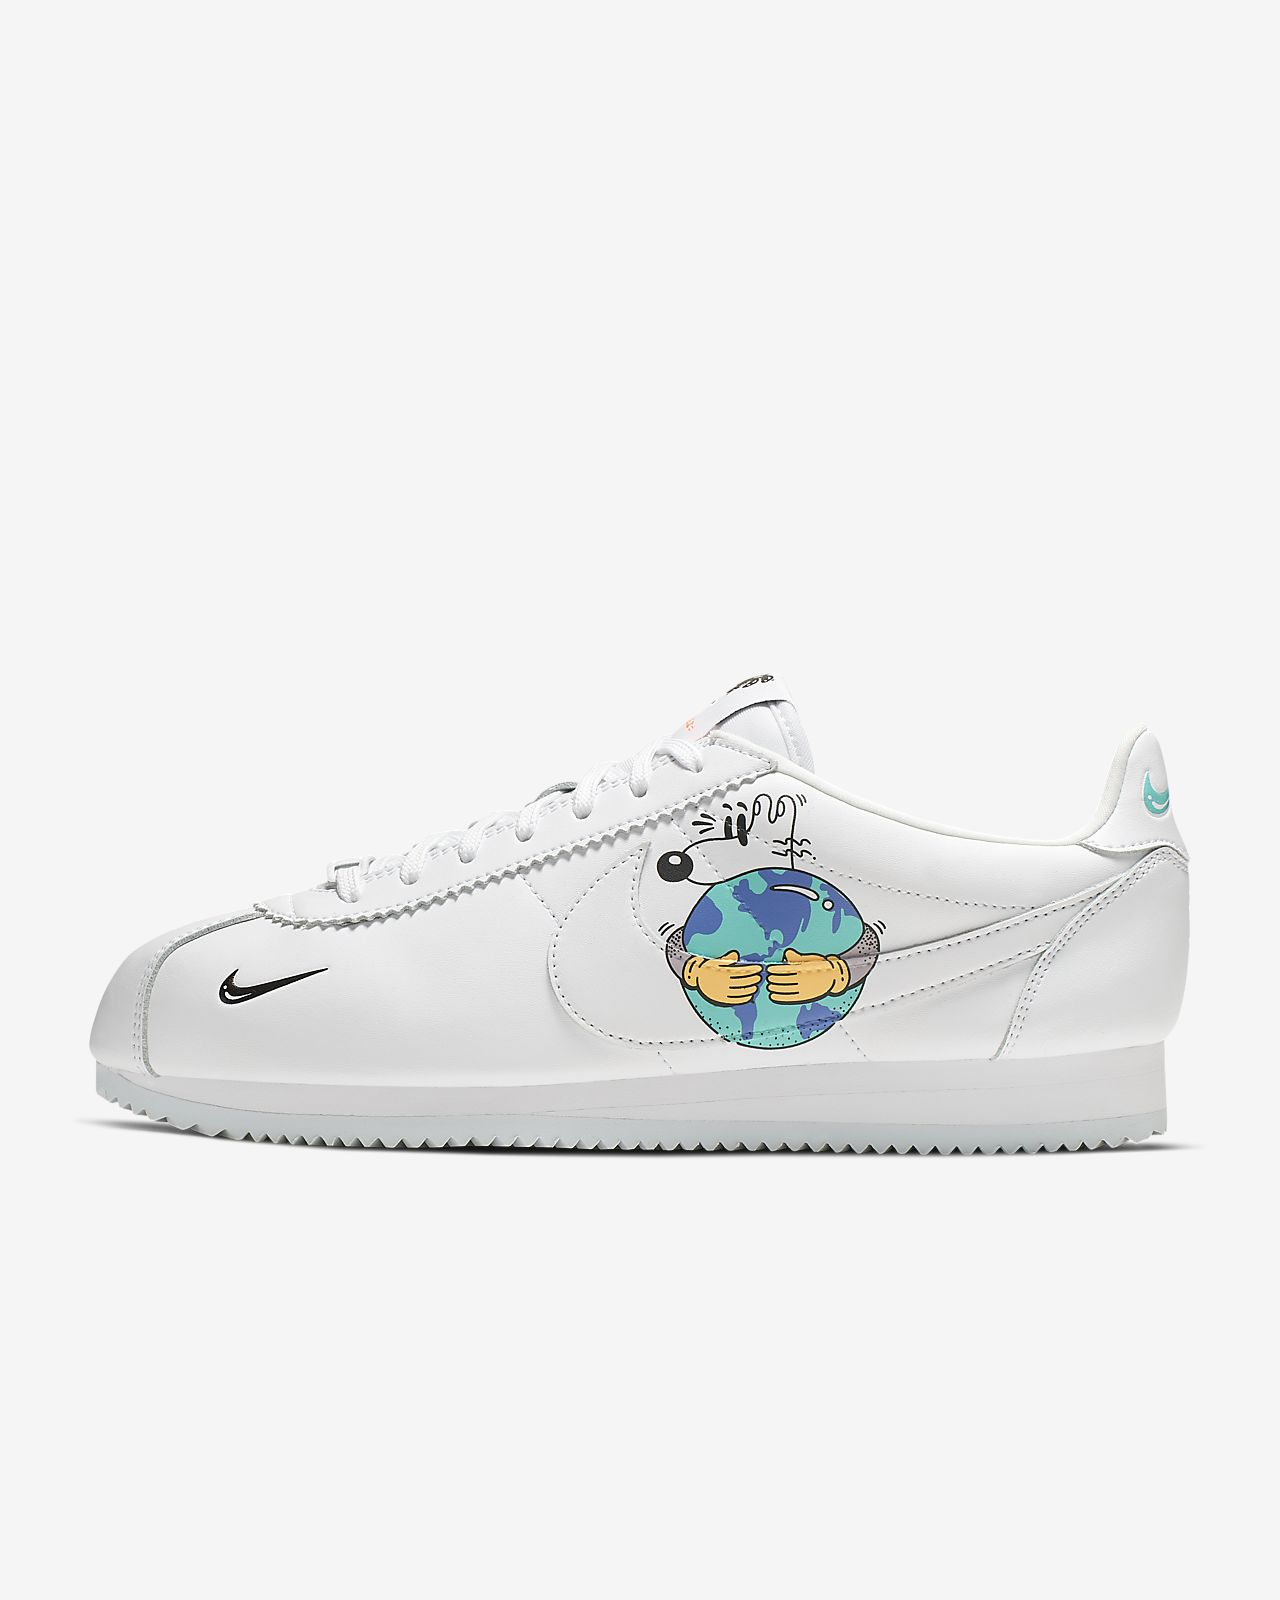 quality design 9266b c45c4 Nike Cortez QS Flyleather with at least 50% leather fibre